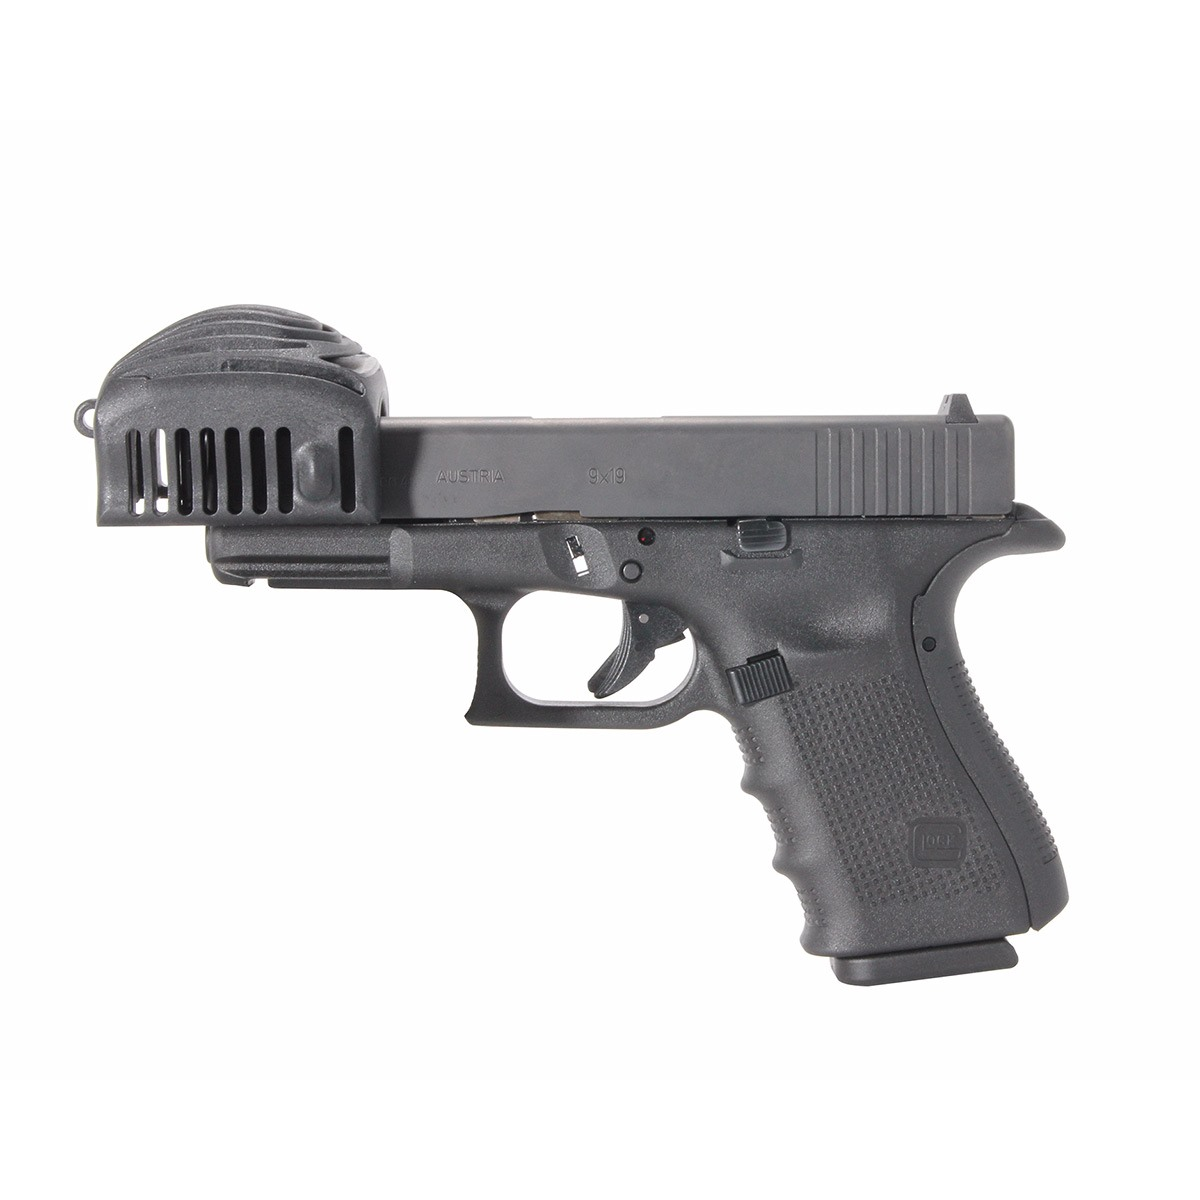 Pachmayr Rack It Slide Assist Brownells Ruger Lcp Extractor Exploded View Diagram Back Open Expanded